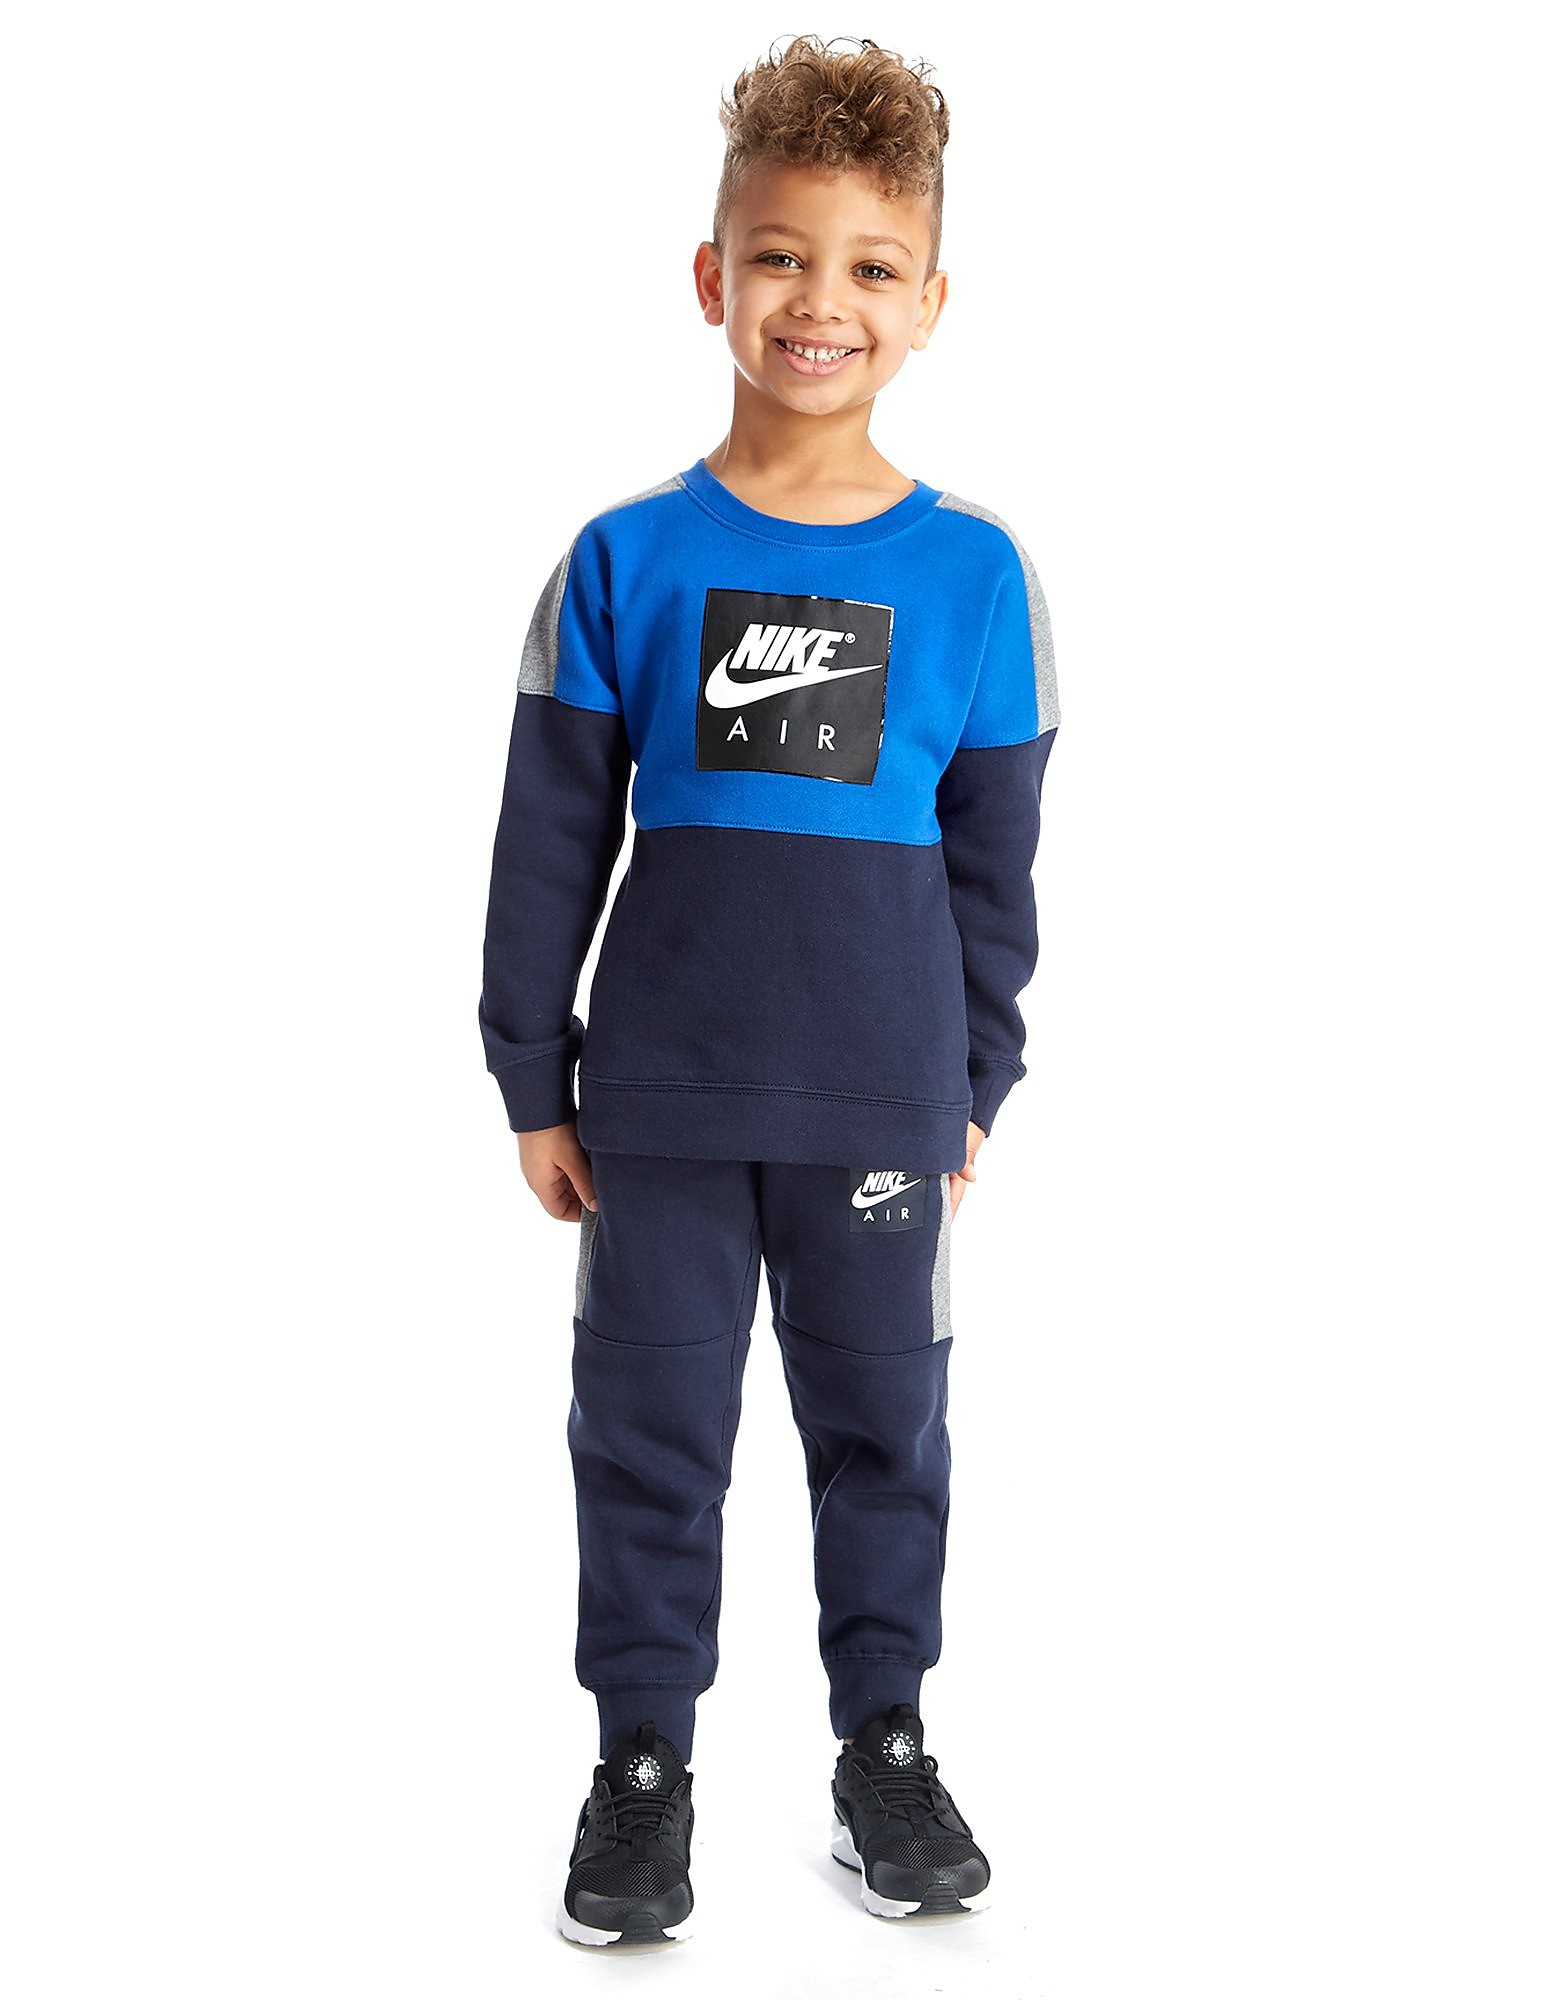 Nike Air Suit Kinderen